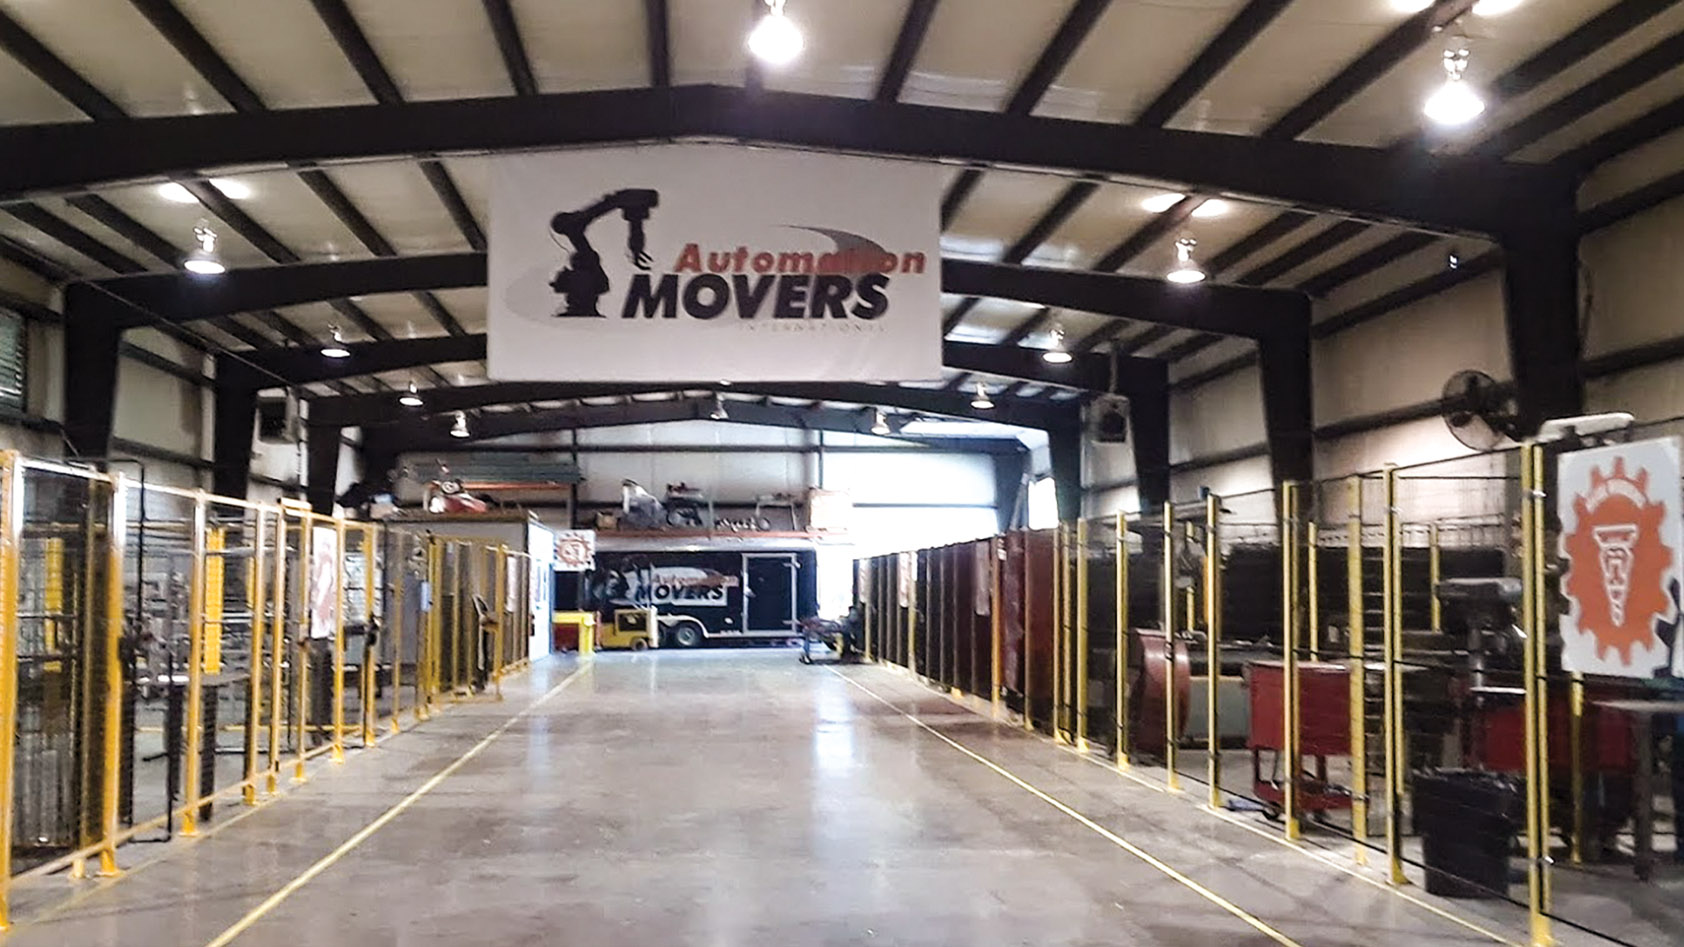 Interior of Automation Movers International, MI